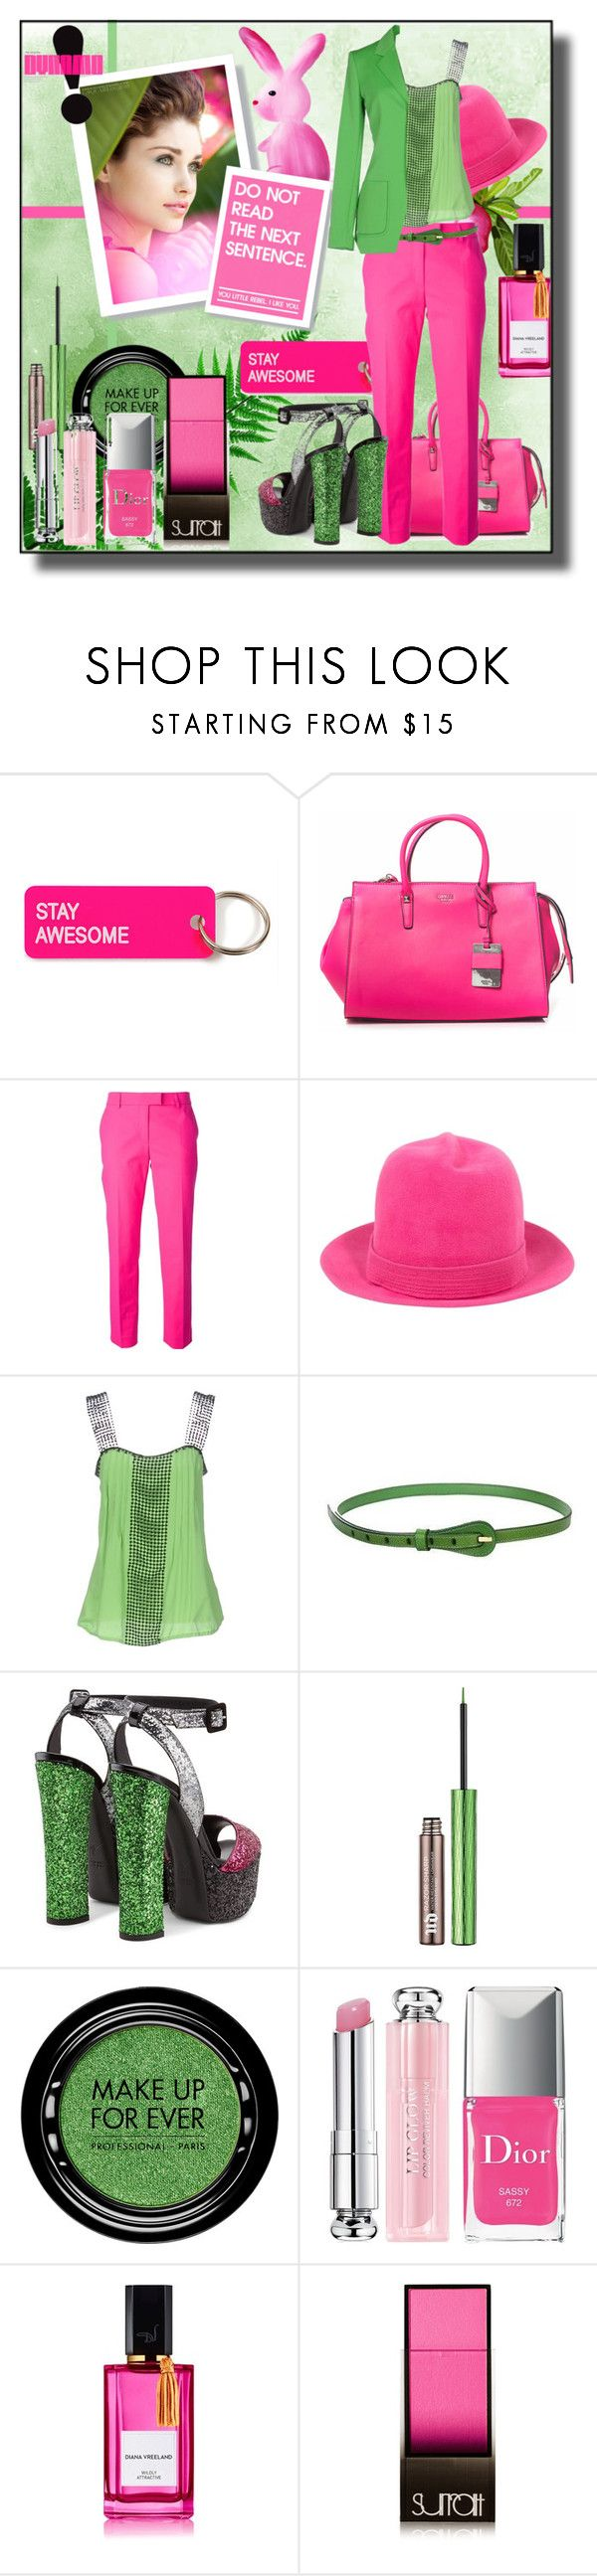 """Stay Awesome"" by kelly-floramoon-legg ❤ liked on Polyvore featuring Various Projects, GUESS, Moschino, Susan van der Linde, Maria Grazia Severi, Giuseppe Zanotti, Urban Decay, MAKE UP FOR EVER, Christian Dior and Diana Vreeland"